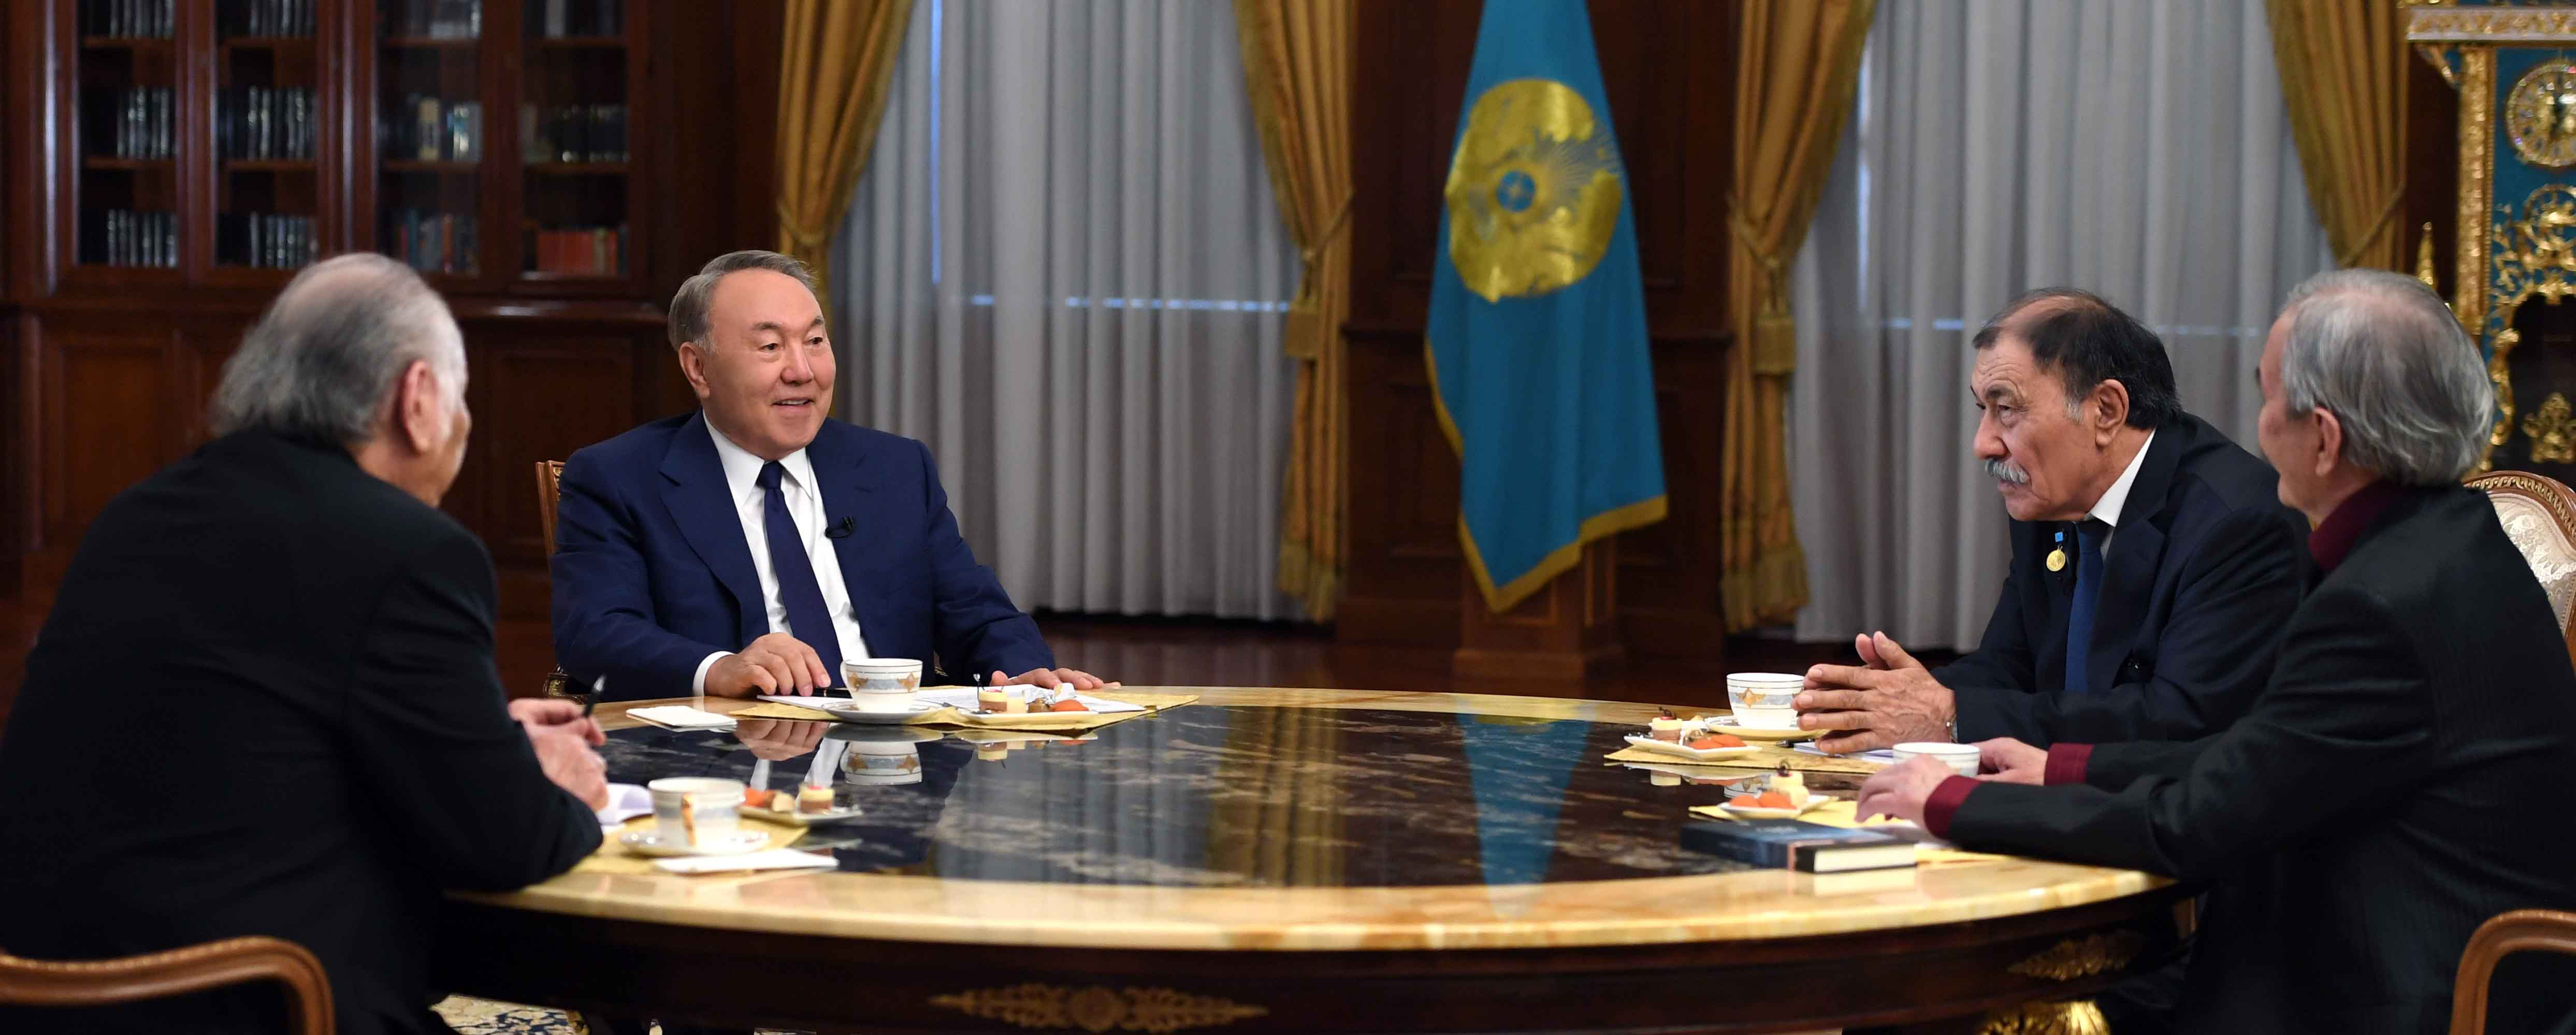 trilingual education in kazakhstan prospects and Purpose of this qualitative phd study is to examine the debate on the issue of trilingual education in kazakhstan, to place that debate in a meaningful and useful context based on the international literature.